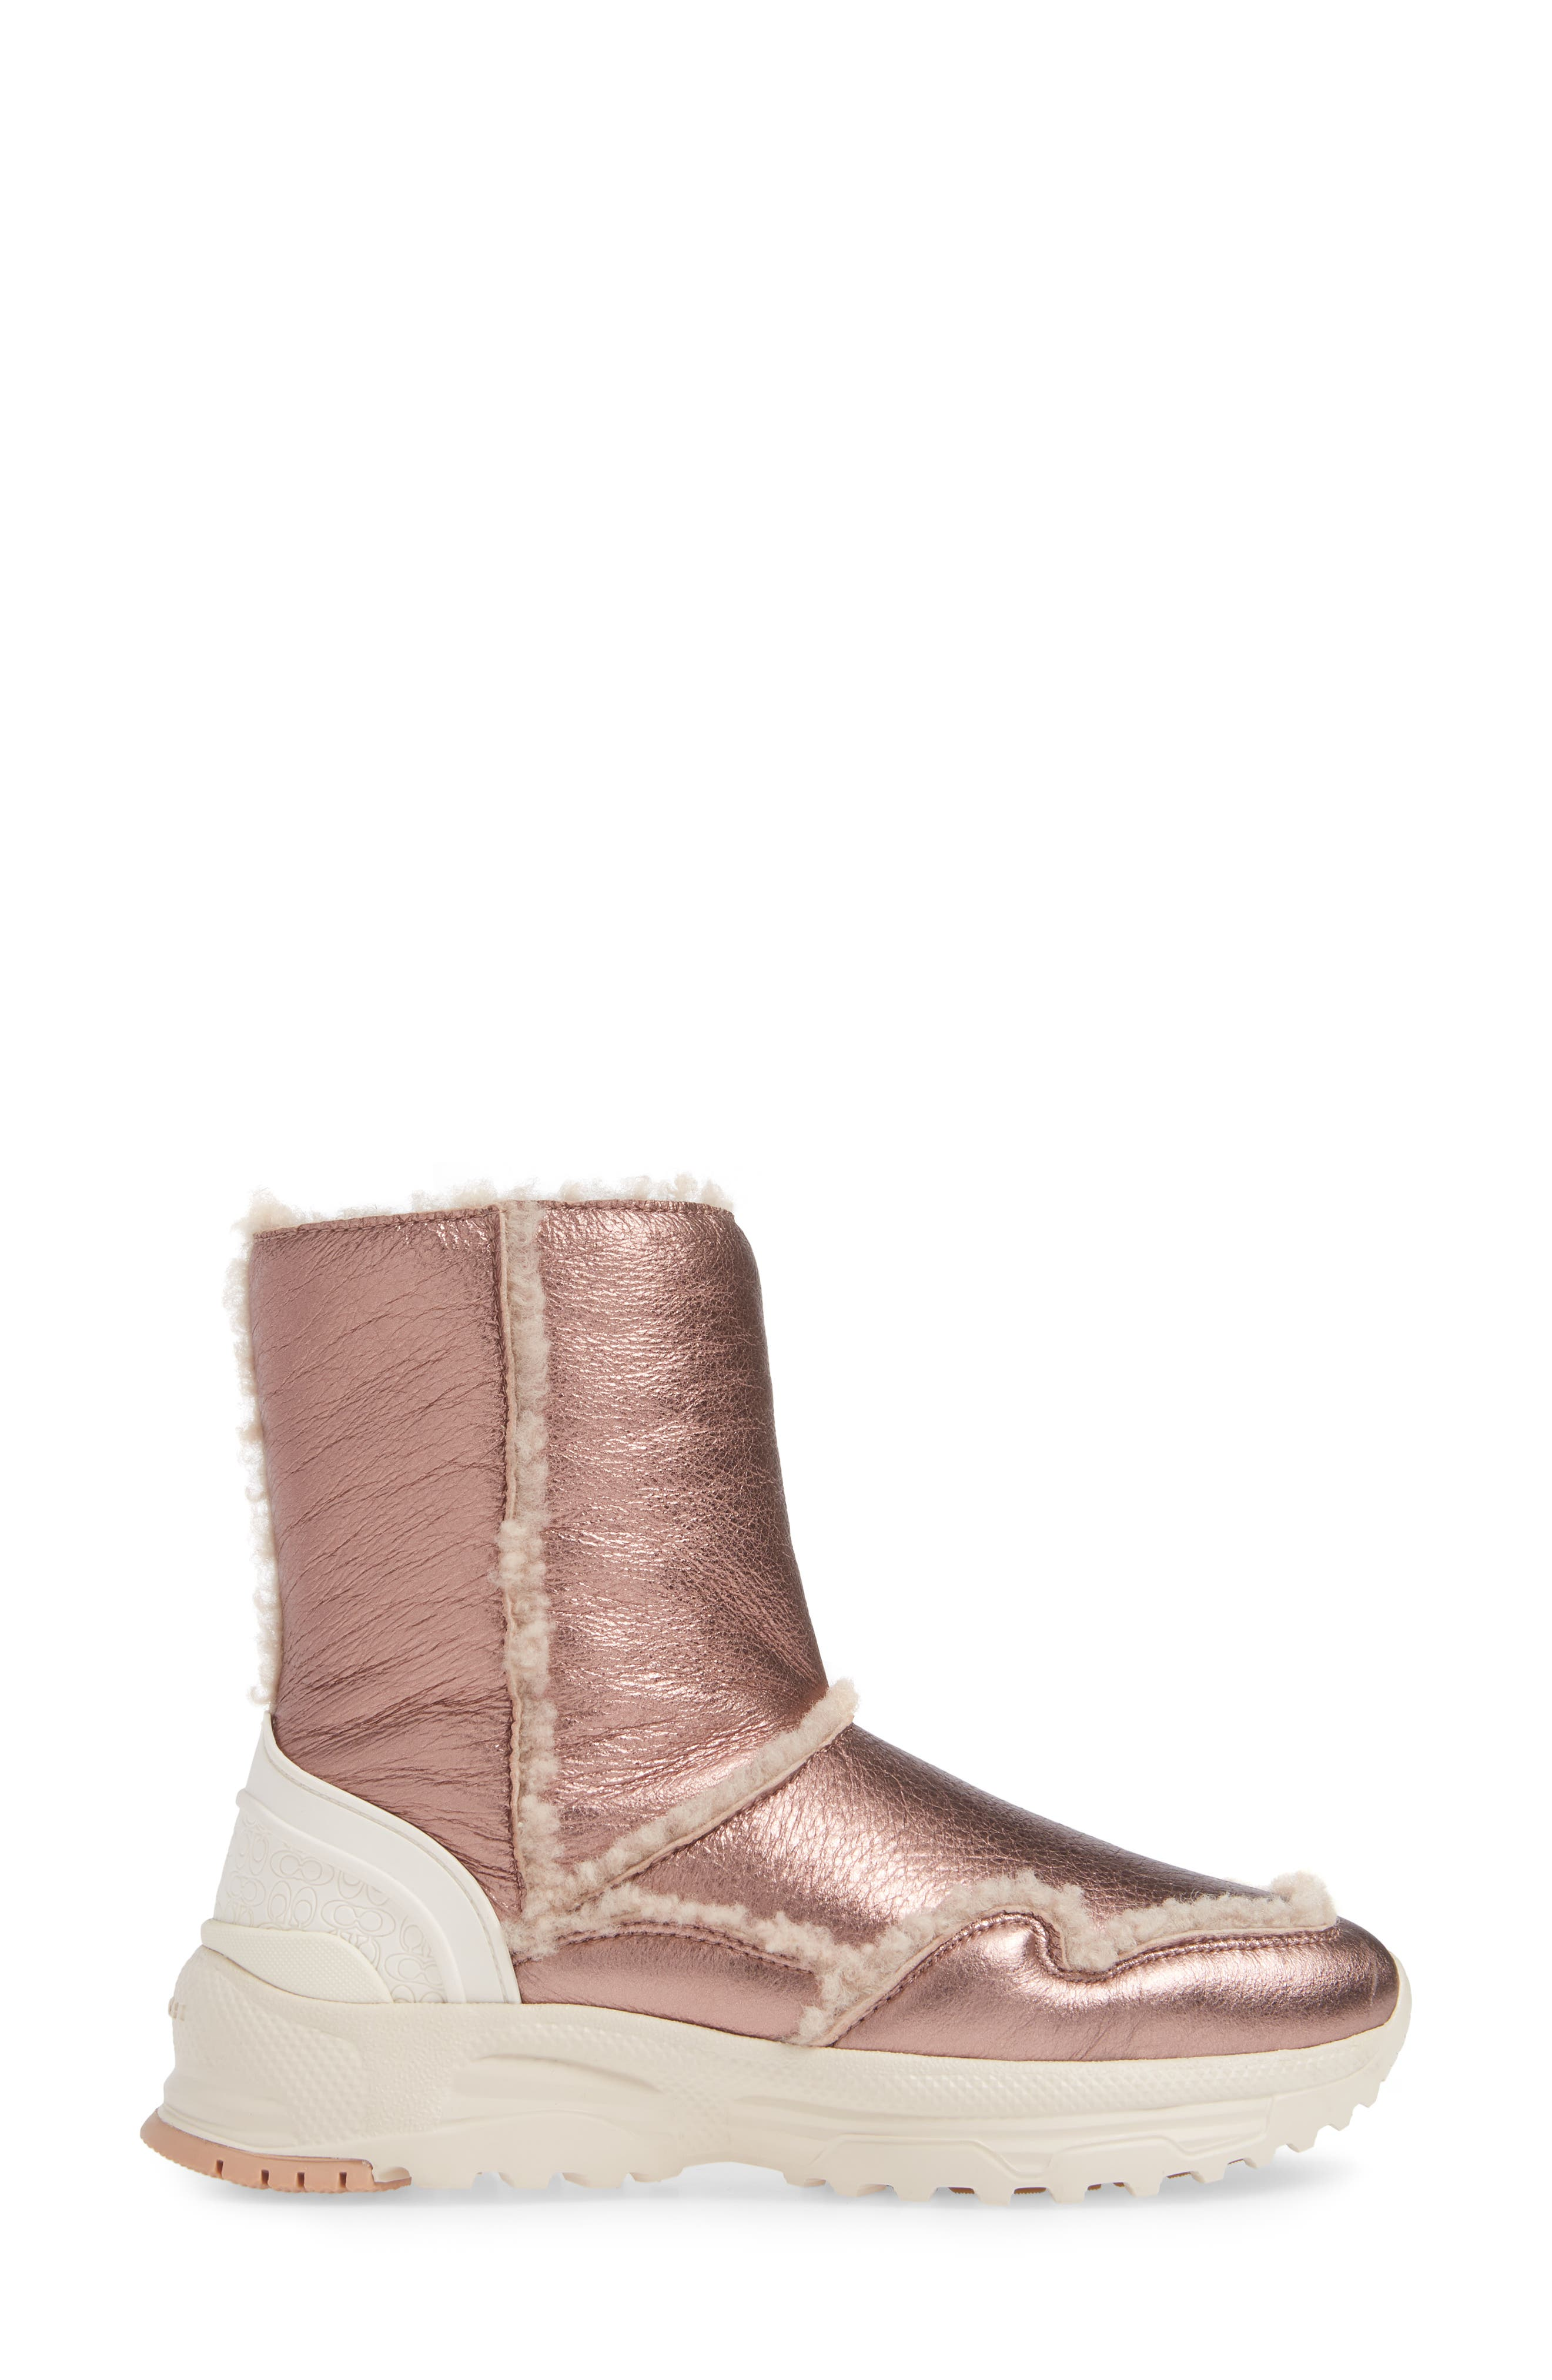 COACH,                             Portia Genuine Shearling Bootie,                             Alternate thumbnail 3, color,                             PINK